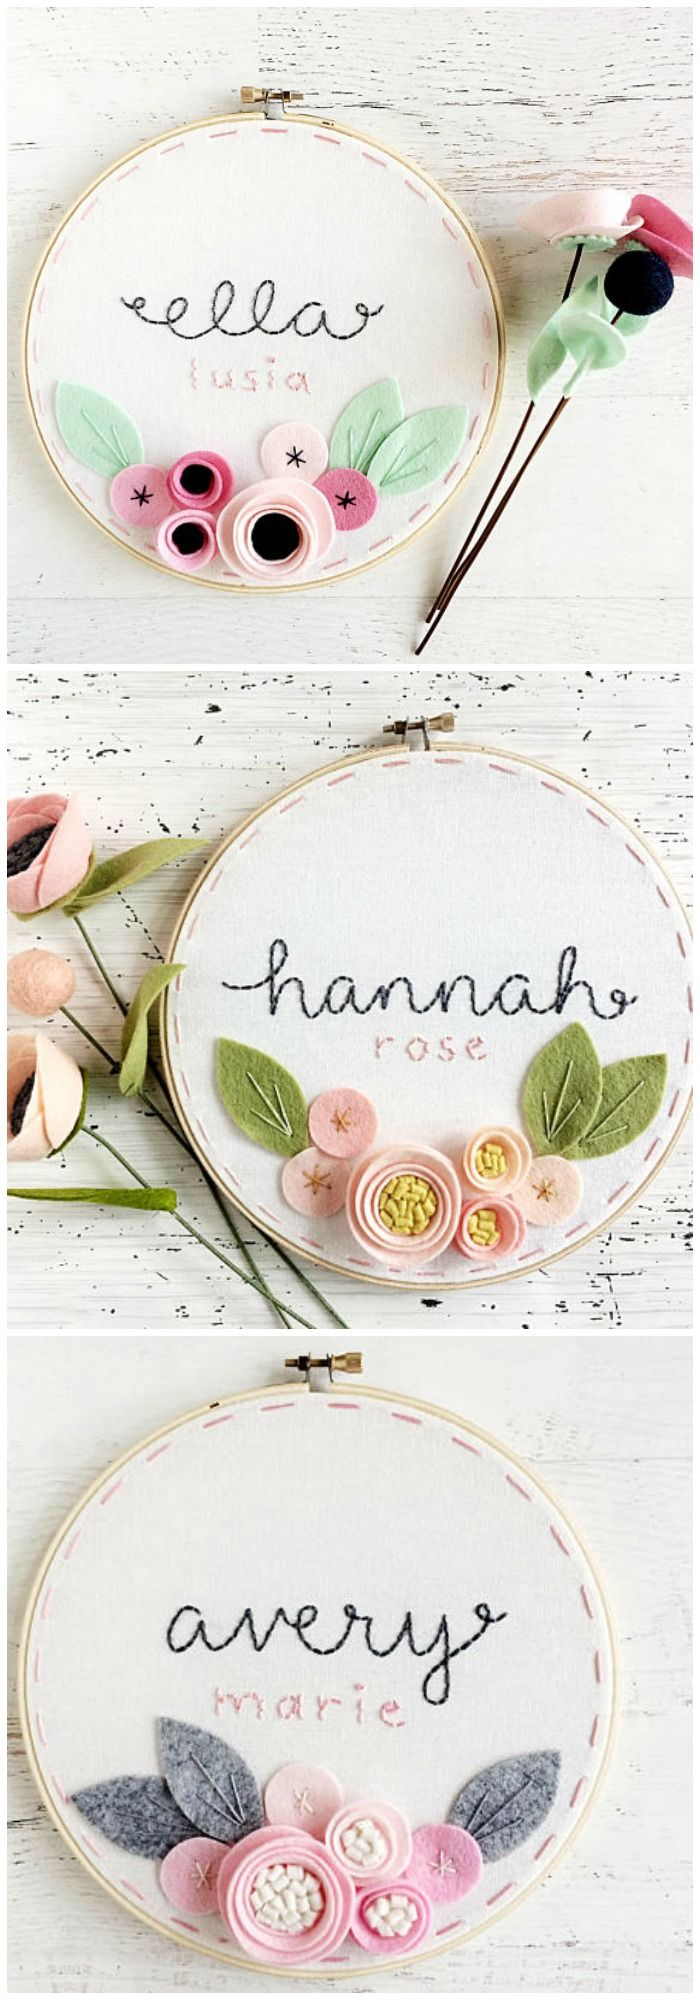 What a sweet addition to a nursery - personalized embroidery hoop art with felt flowers.